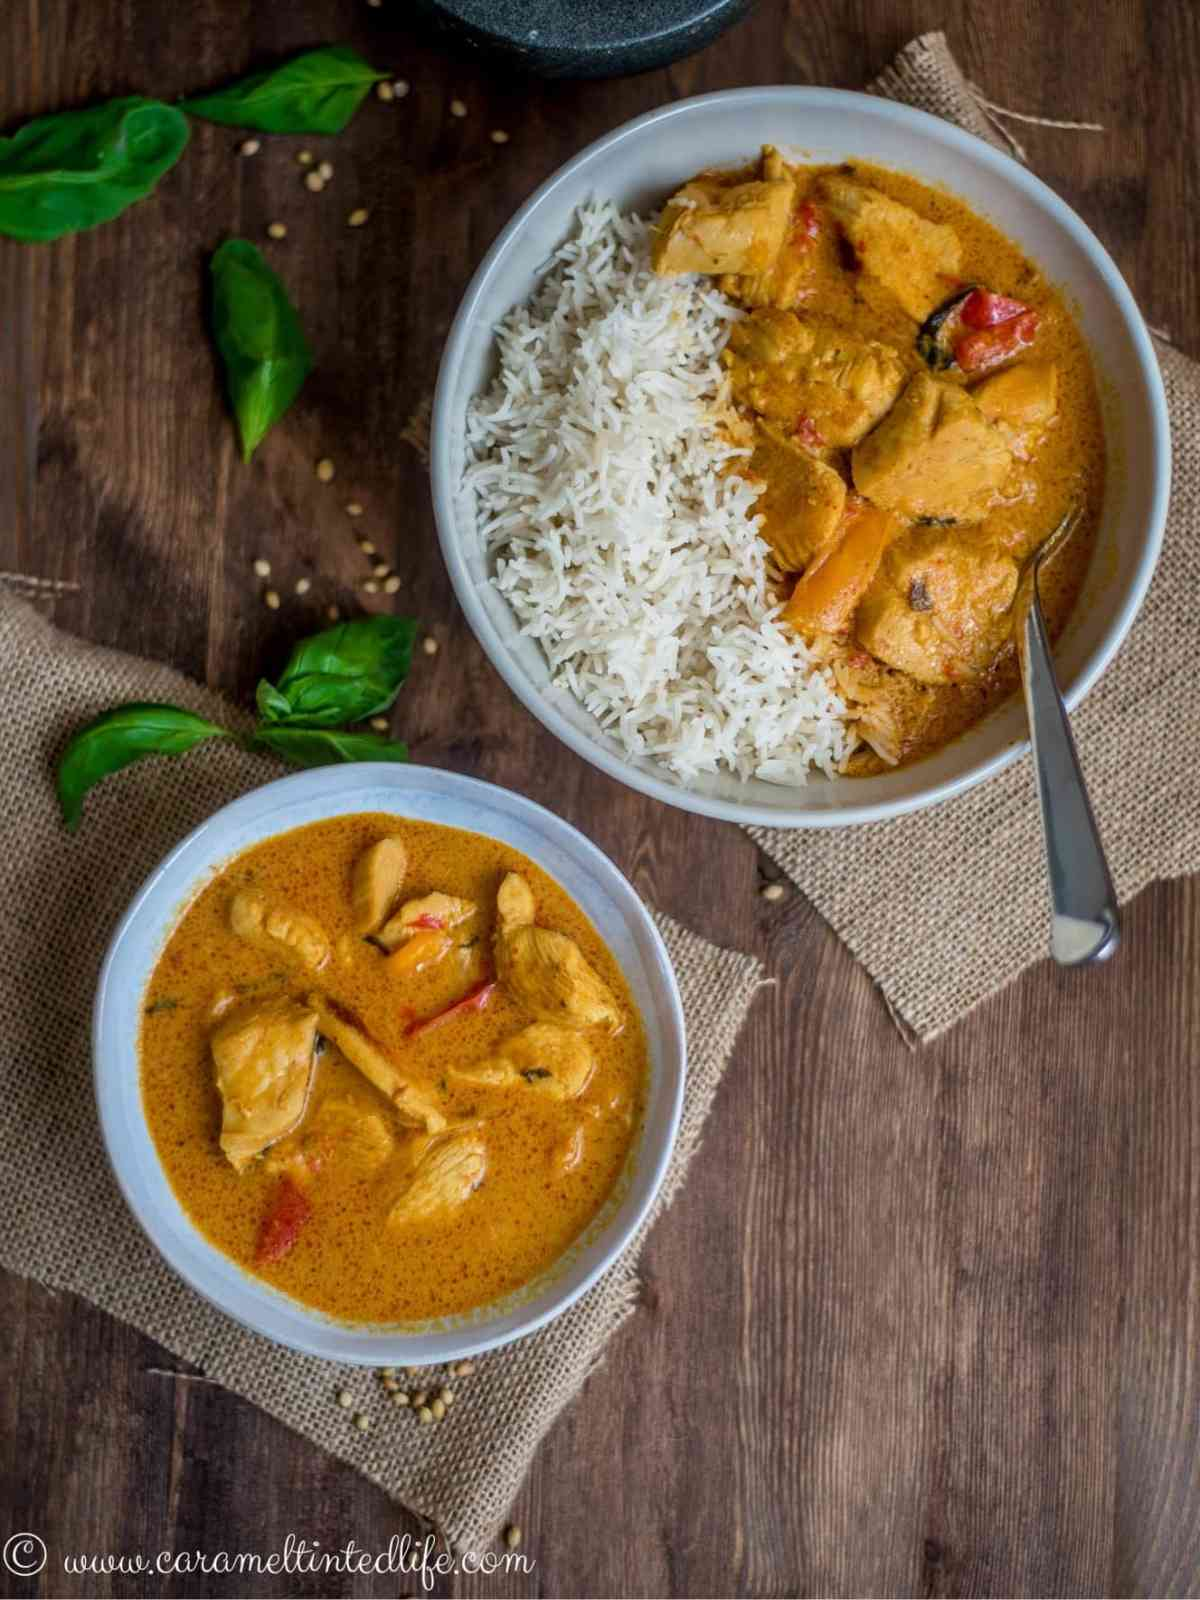 Two bowls of thai chicken curry and rice